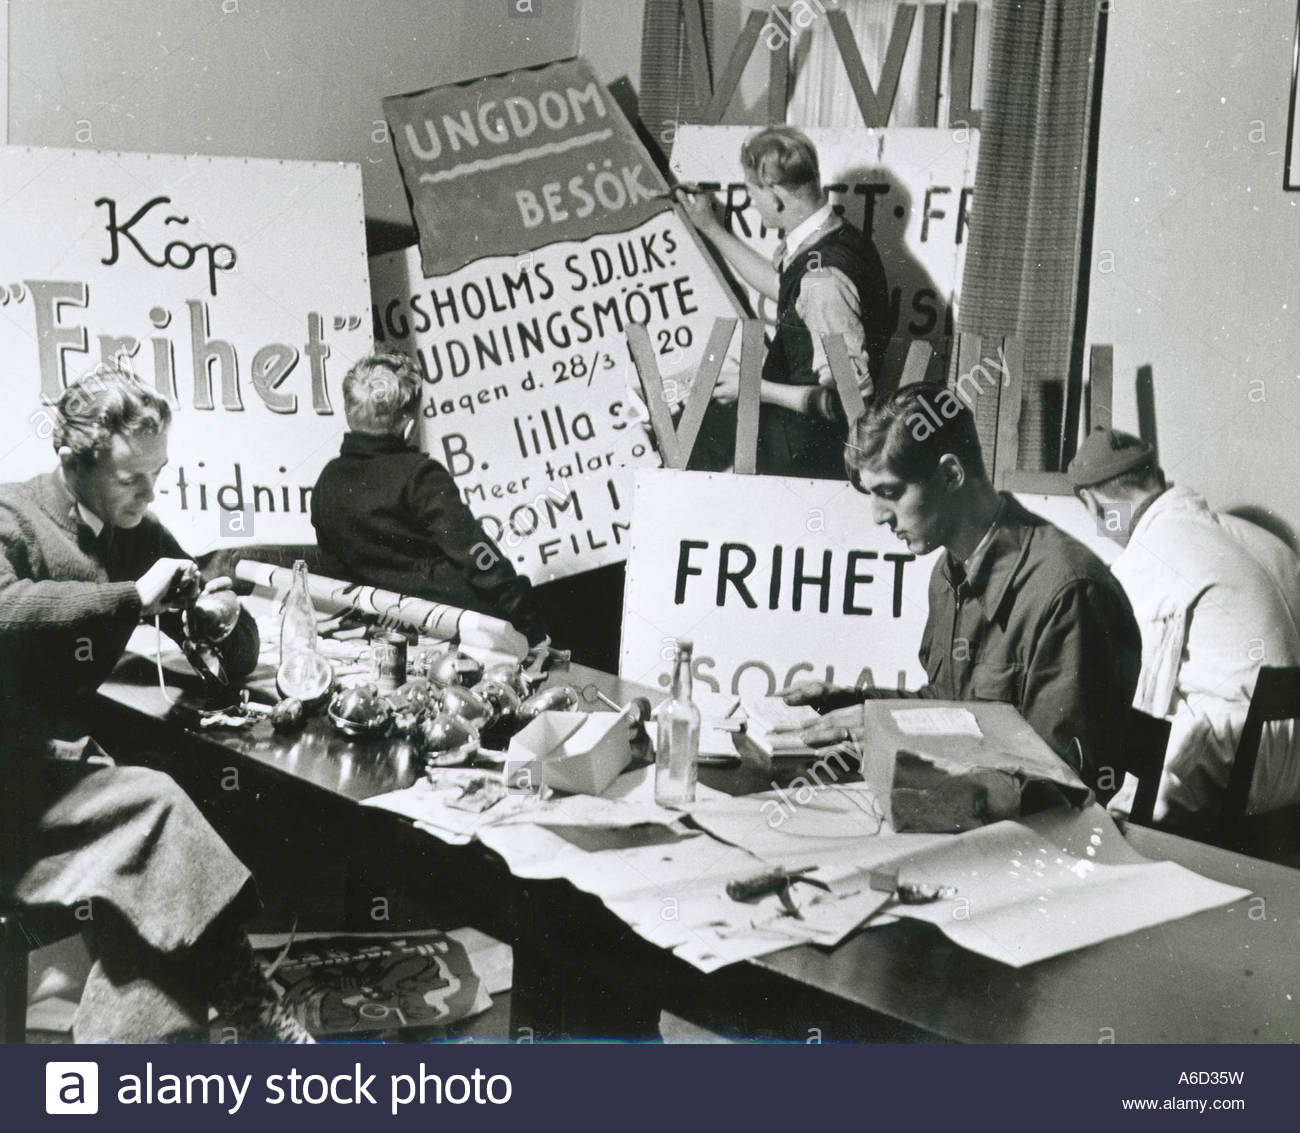 Socialists making propaganda placards in WWII Sweden - Stock Image